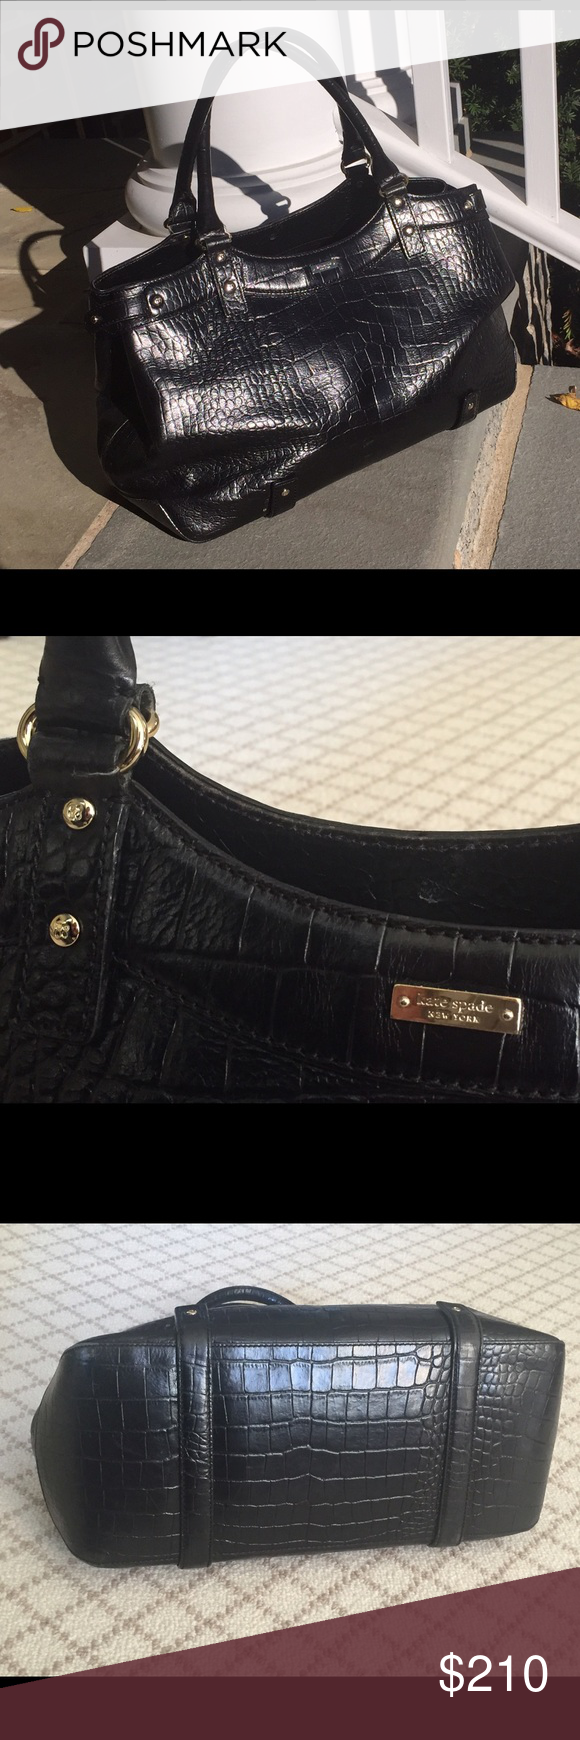 Kate Spade Croc Embossed Leather Black Handbag Authentic Fits All Your Essentials And